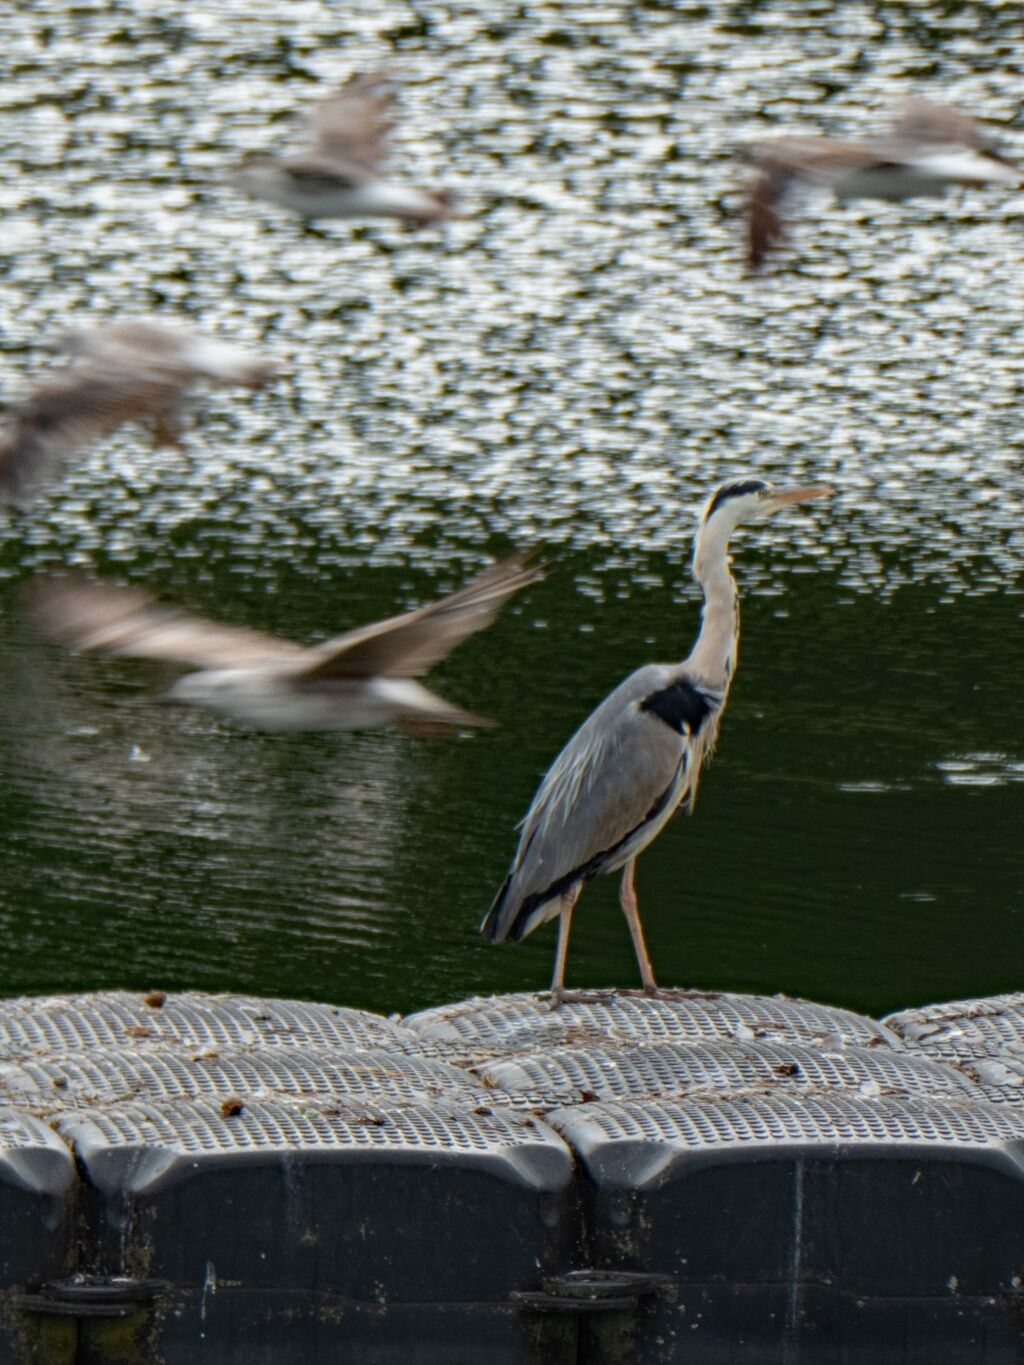 Heron Stands His Ground, Seagulls Take Flight